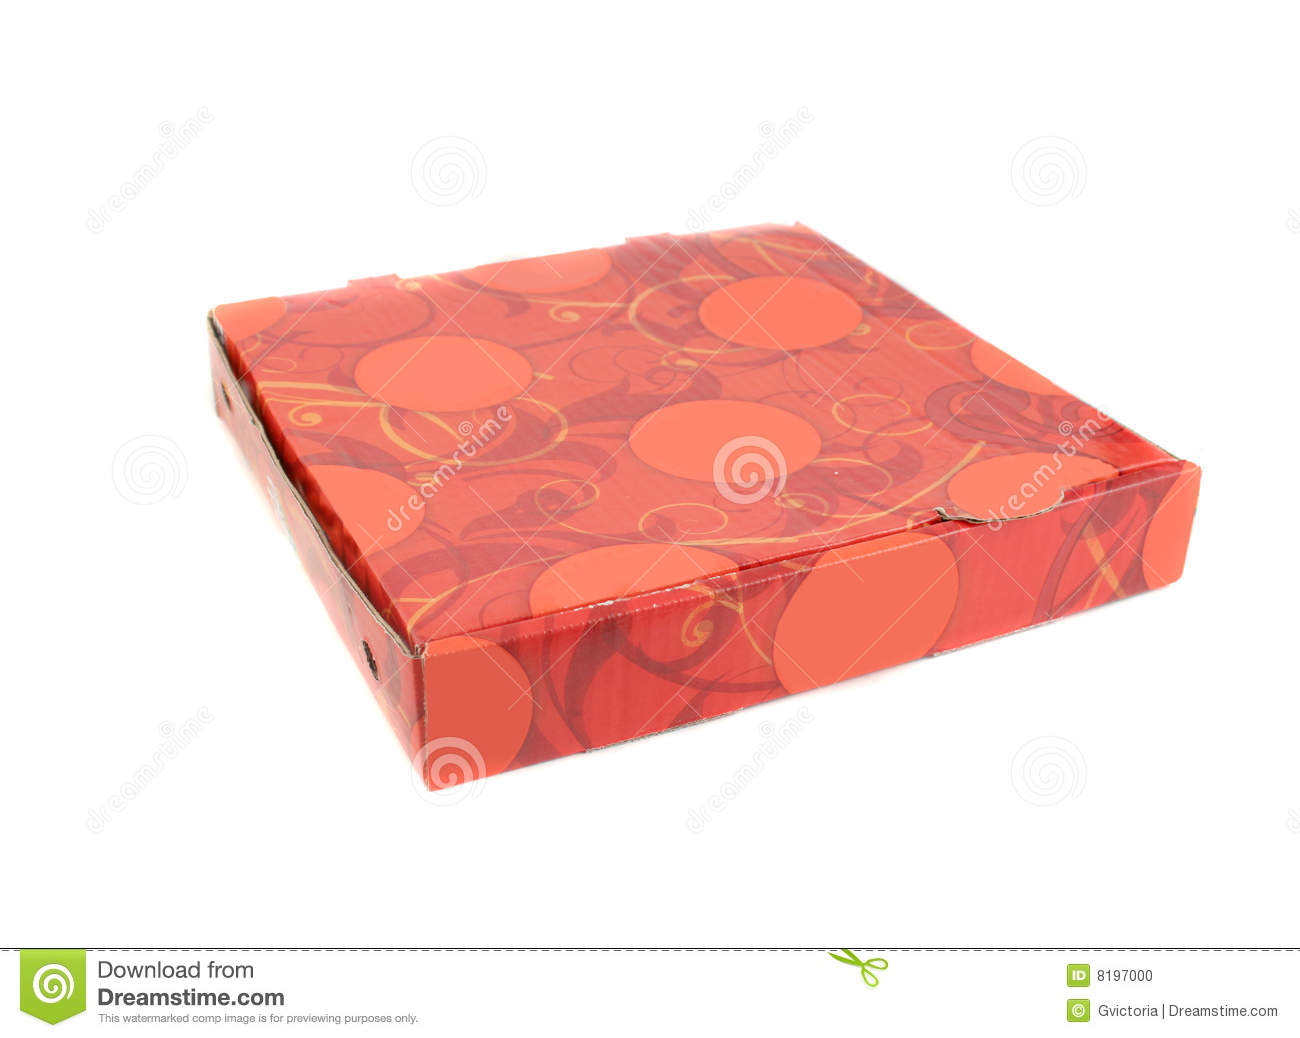 Takeout cardboard pizza delivery box on white background.